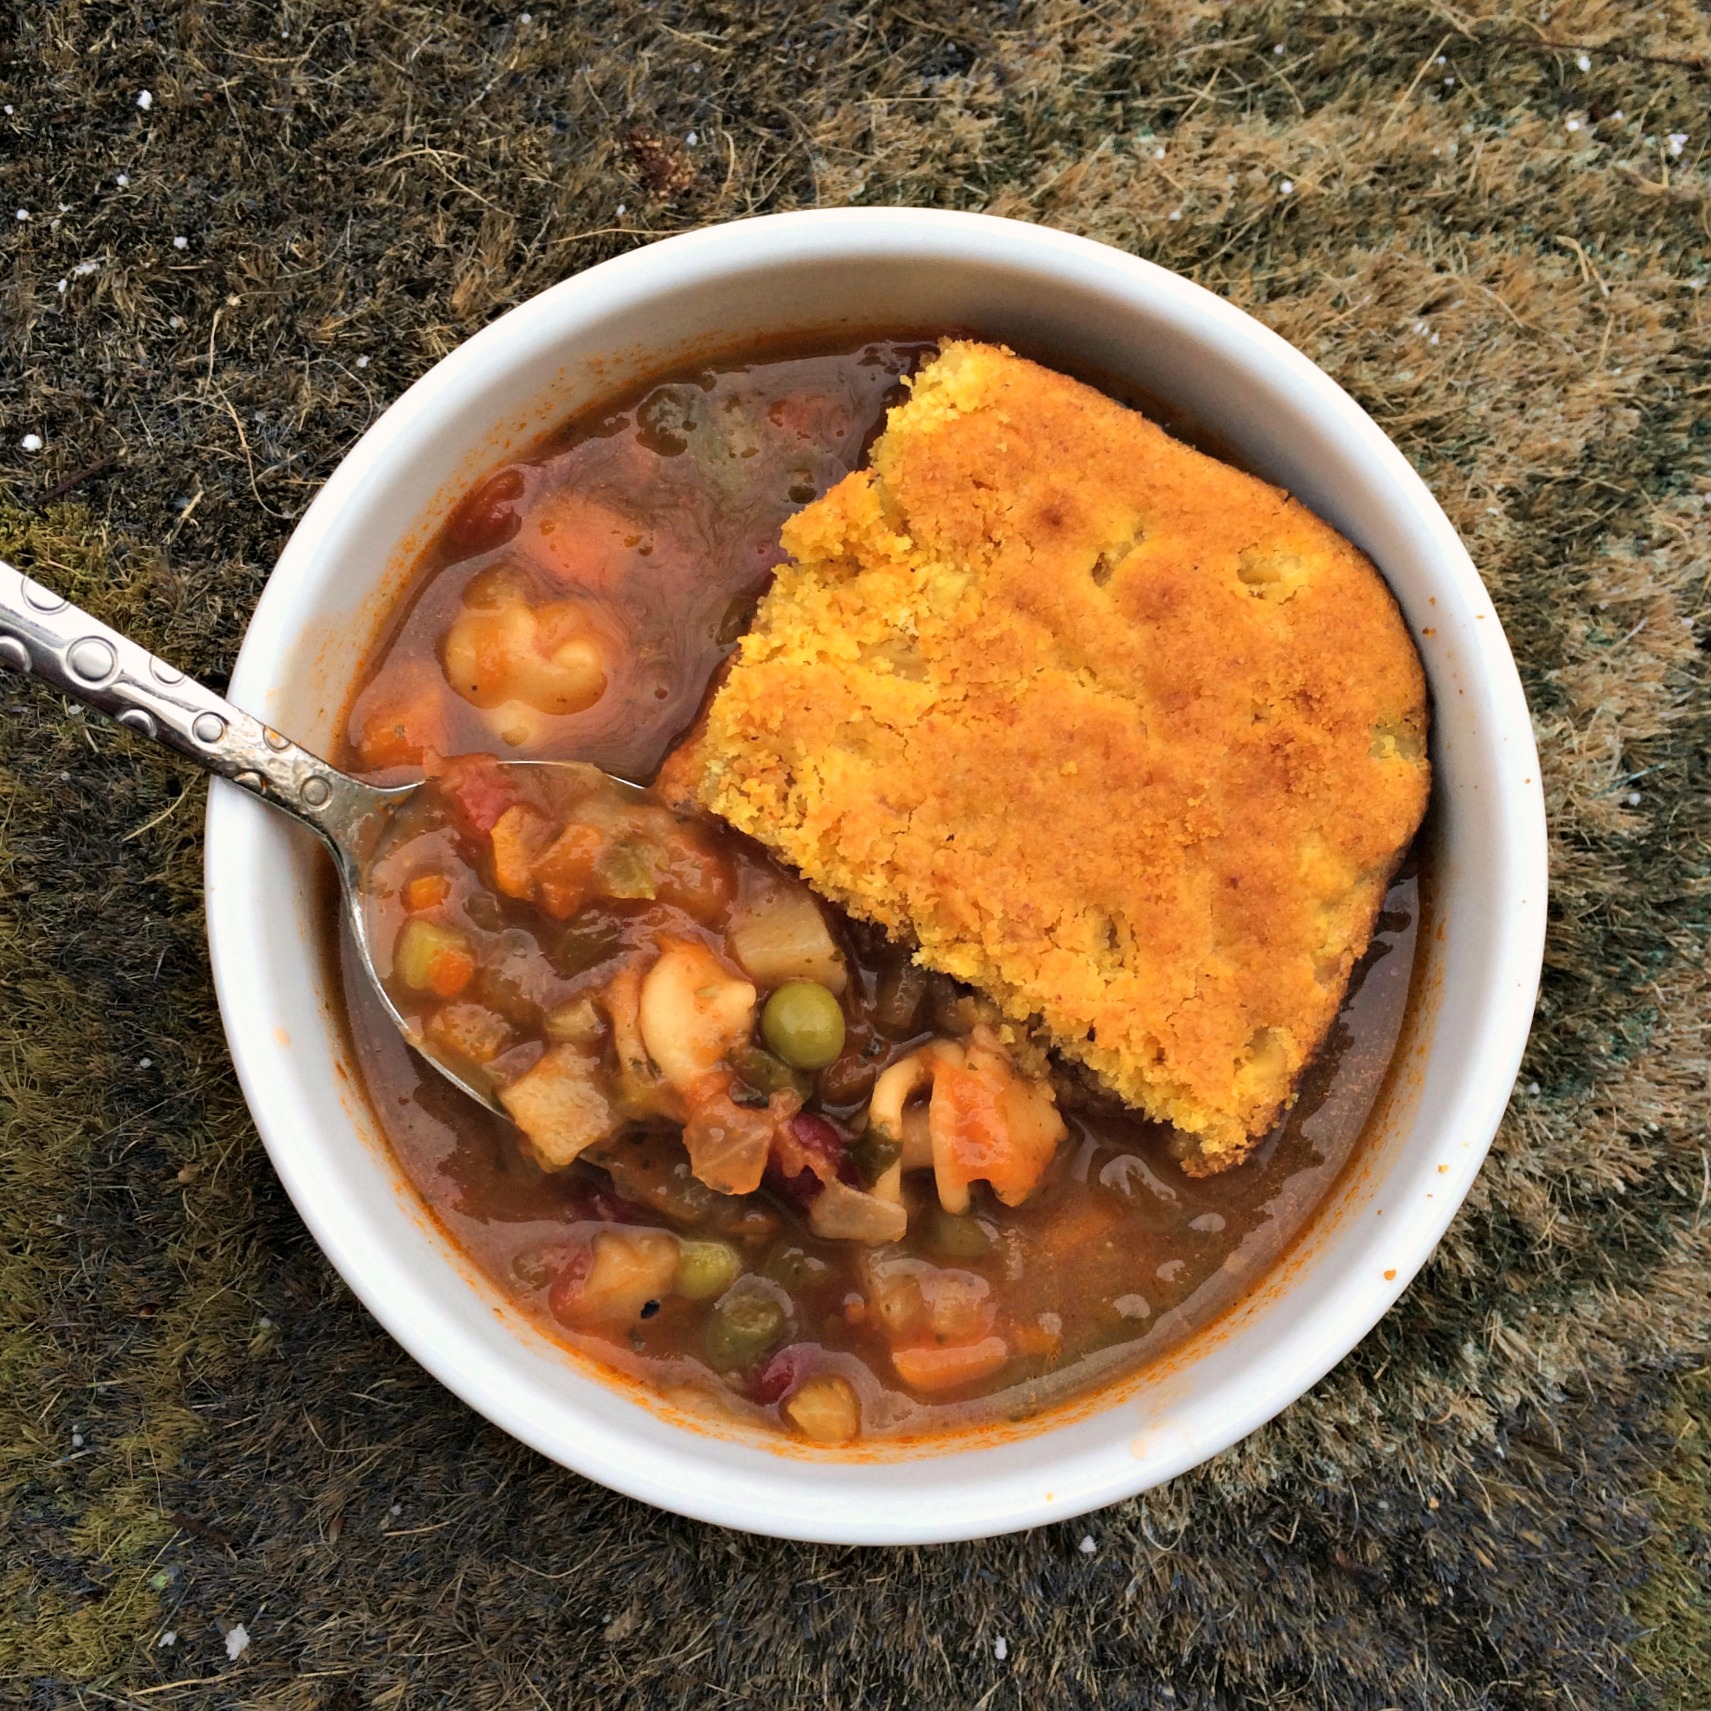 gluten free cornbread with amy's minestrone soup